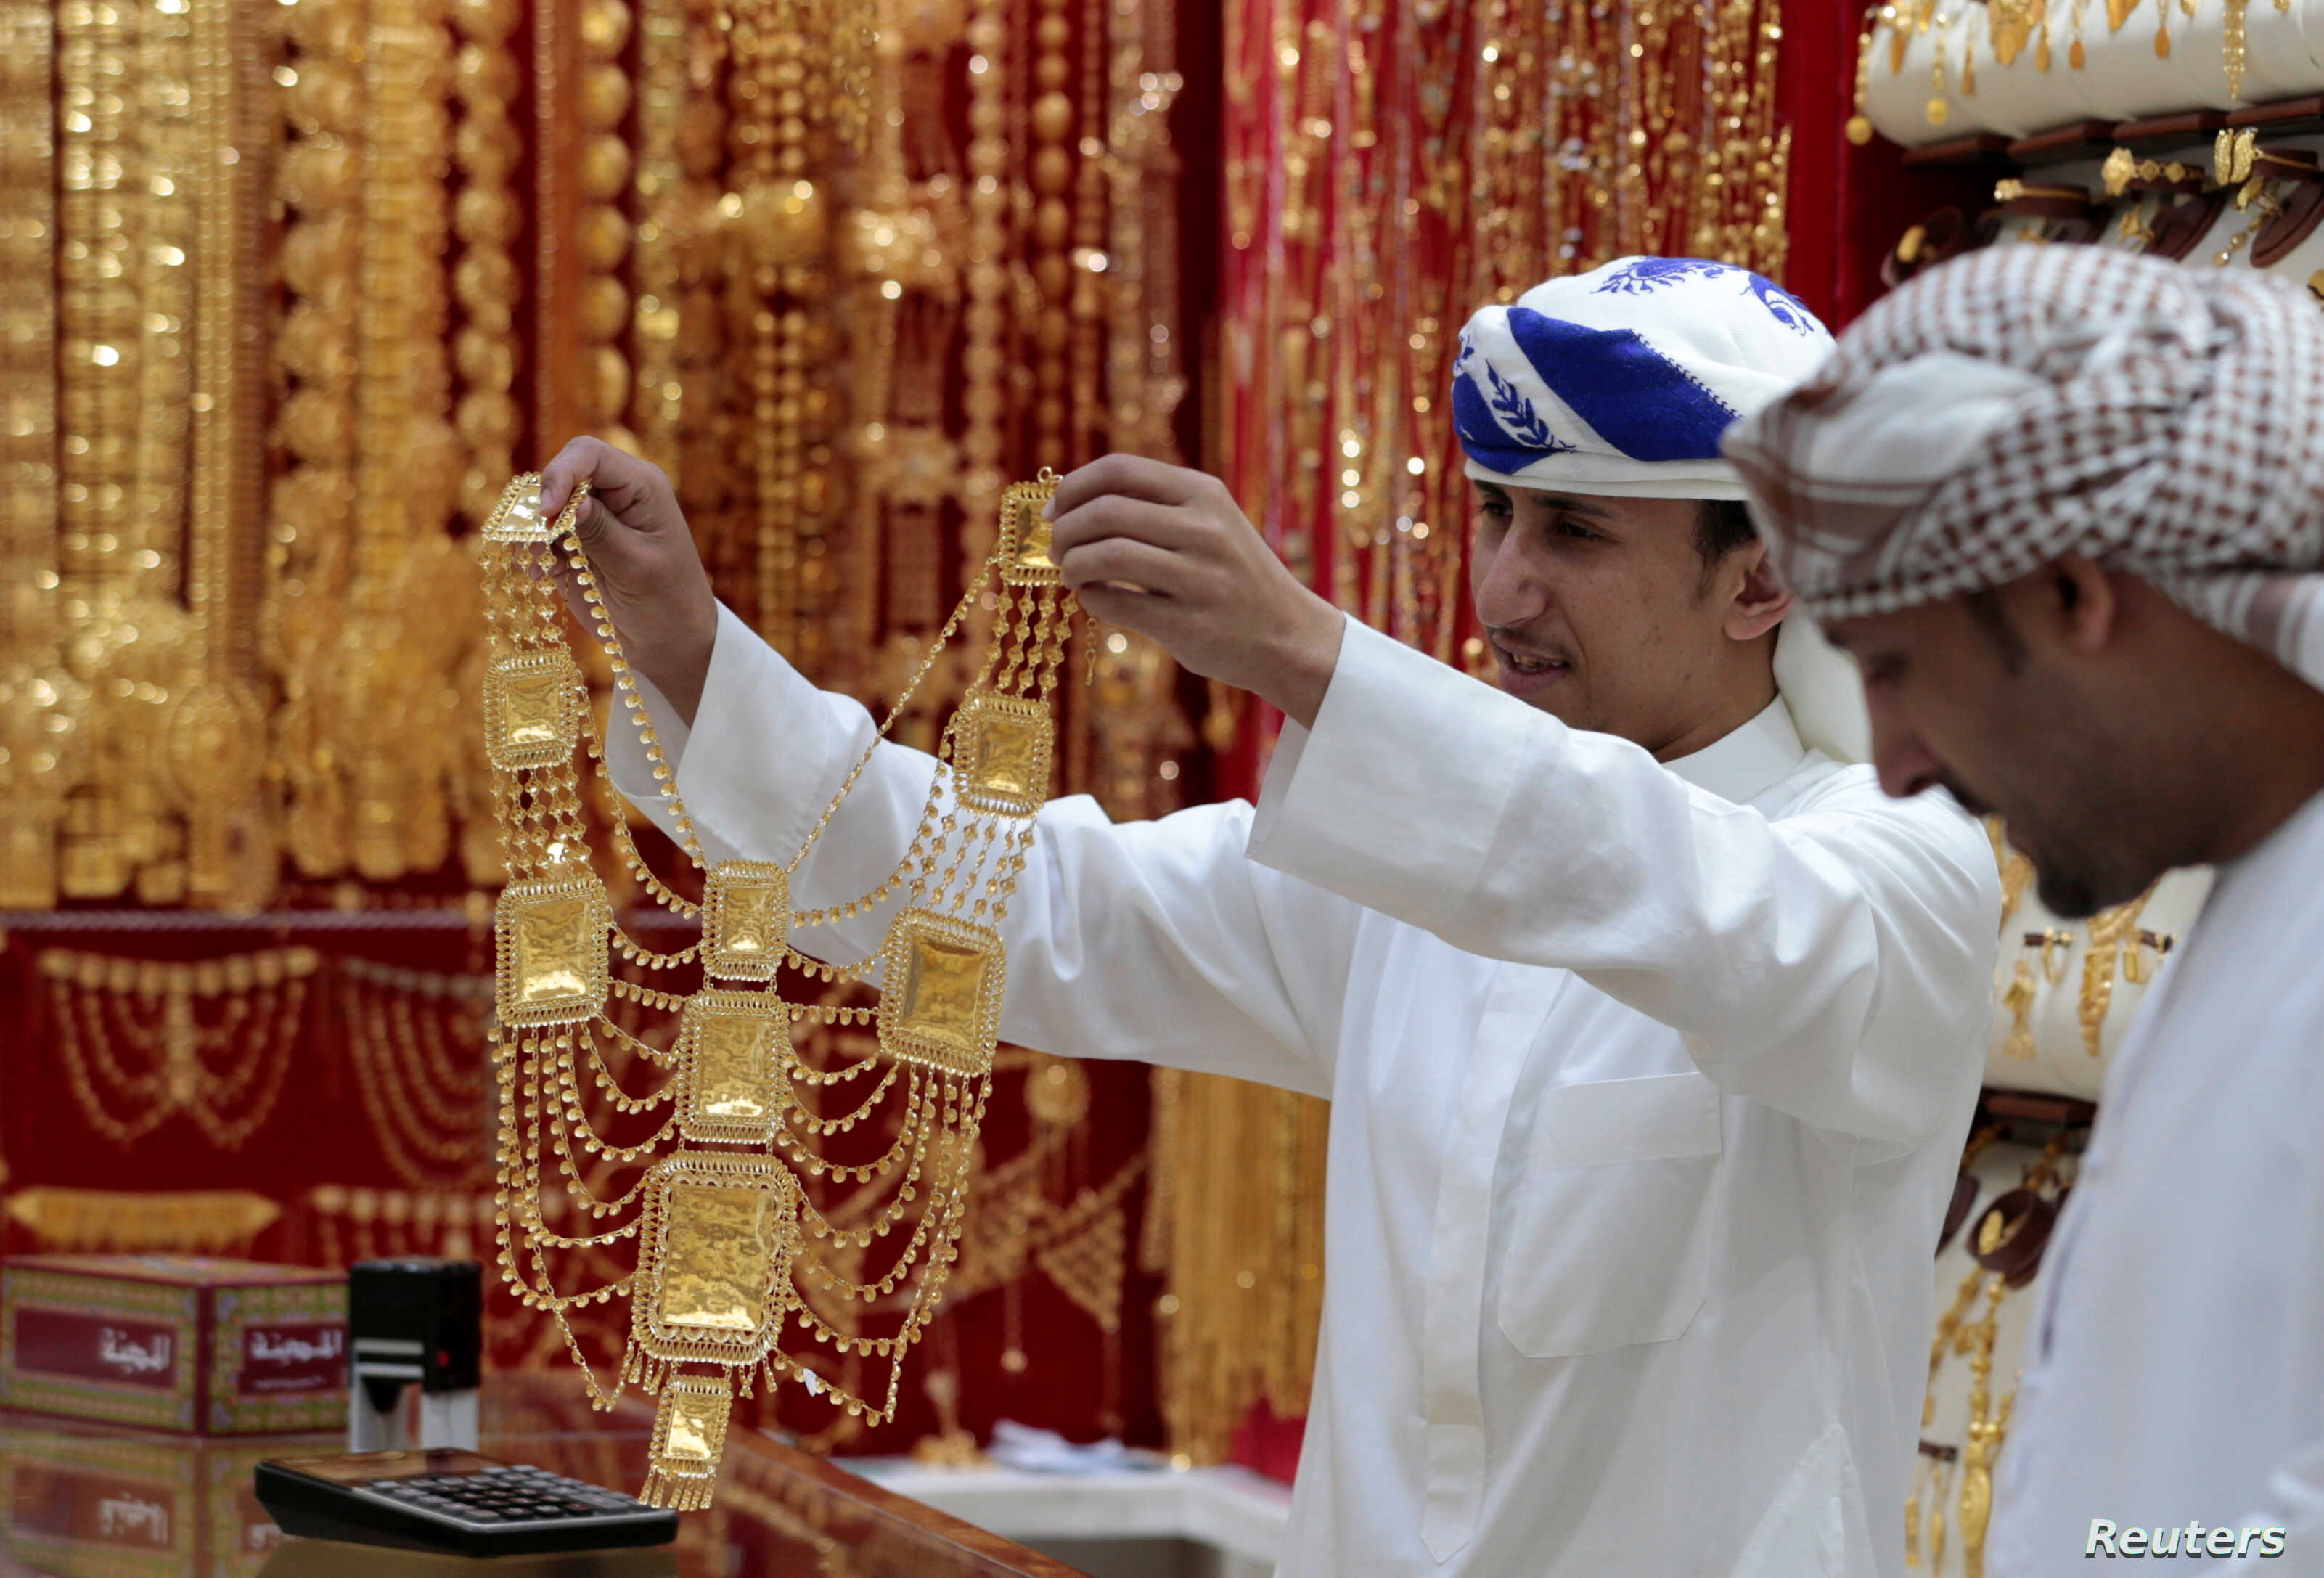 An employee shows a customer gold jewellery in a shop at the Gold Souq in Dubai, United Arab Emirates, March 24, 2018.